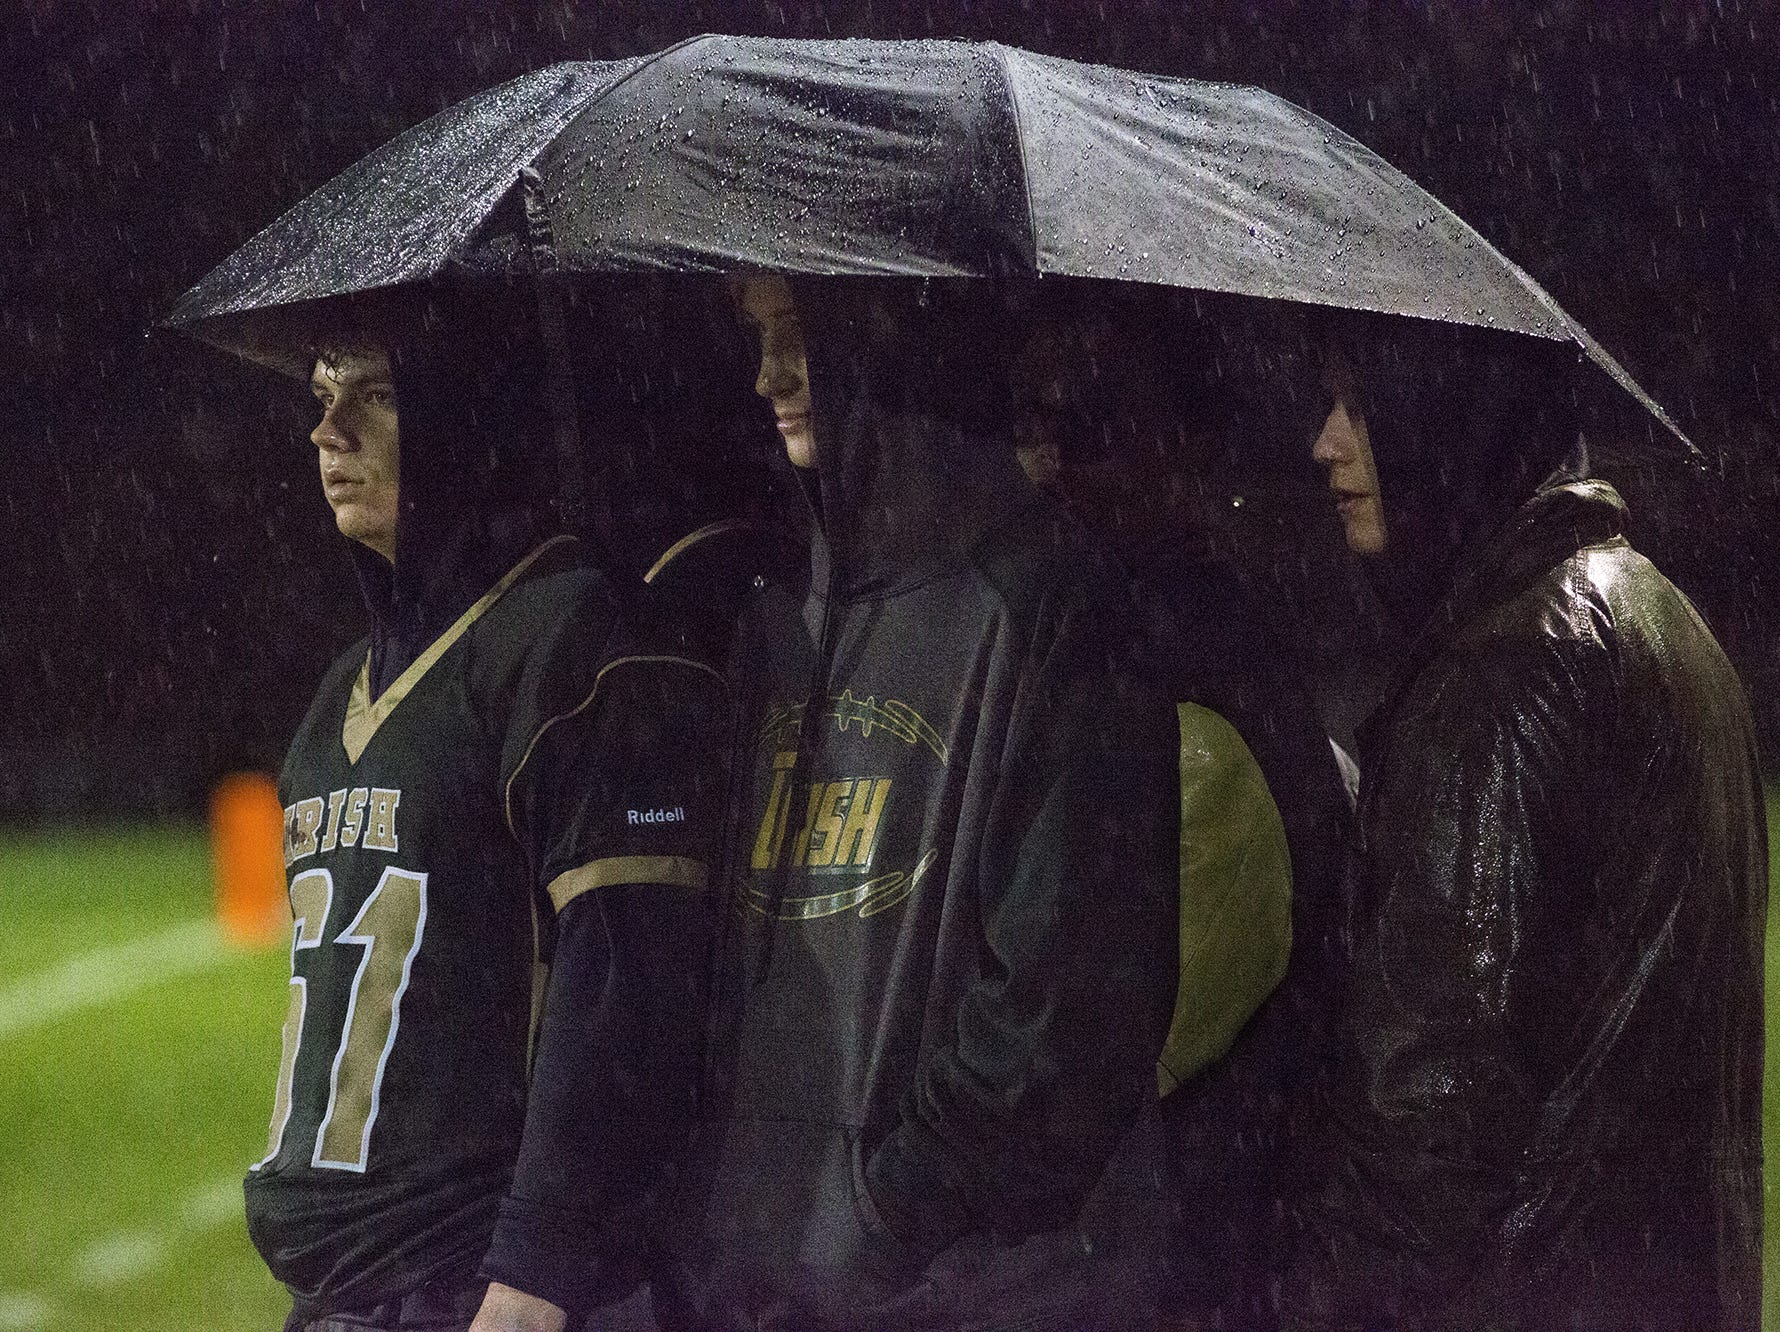 A group of boys share an umbrella on the York Catholic sideline. York Catholic defeats Steelton-Highspire 21-0 in a District 3 Class 2A semifinal football game at York Catholic High School in York, Friday, November 2, 2018.